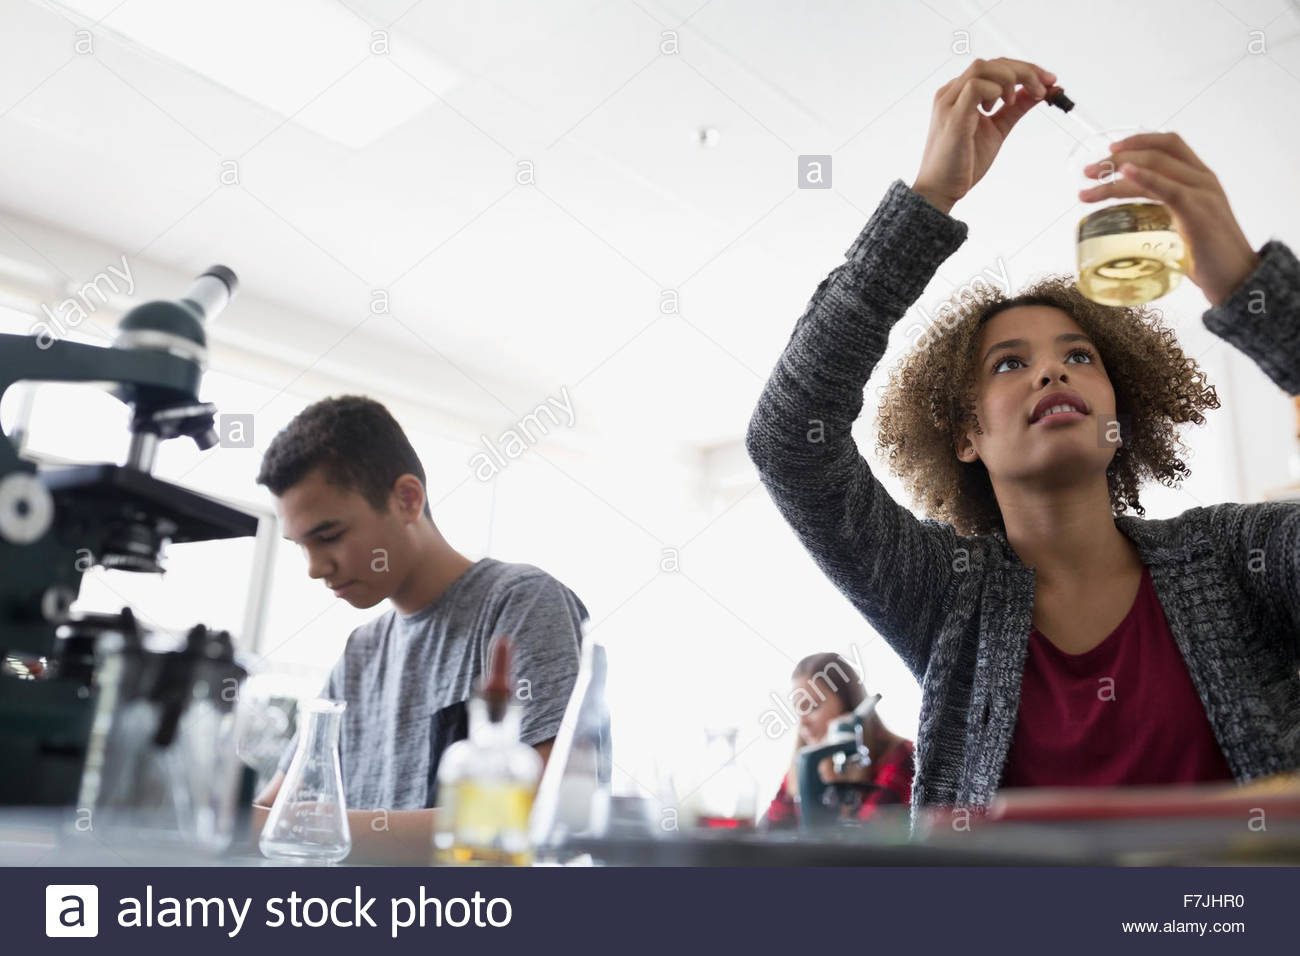 High school student dropping liquid into beaker - Stock Image